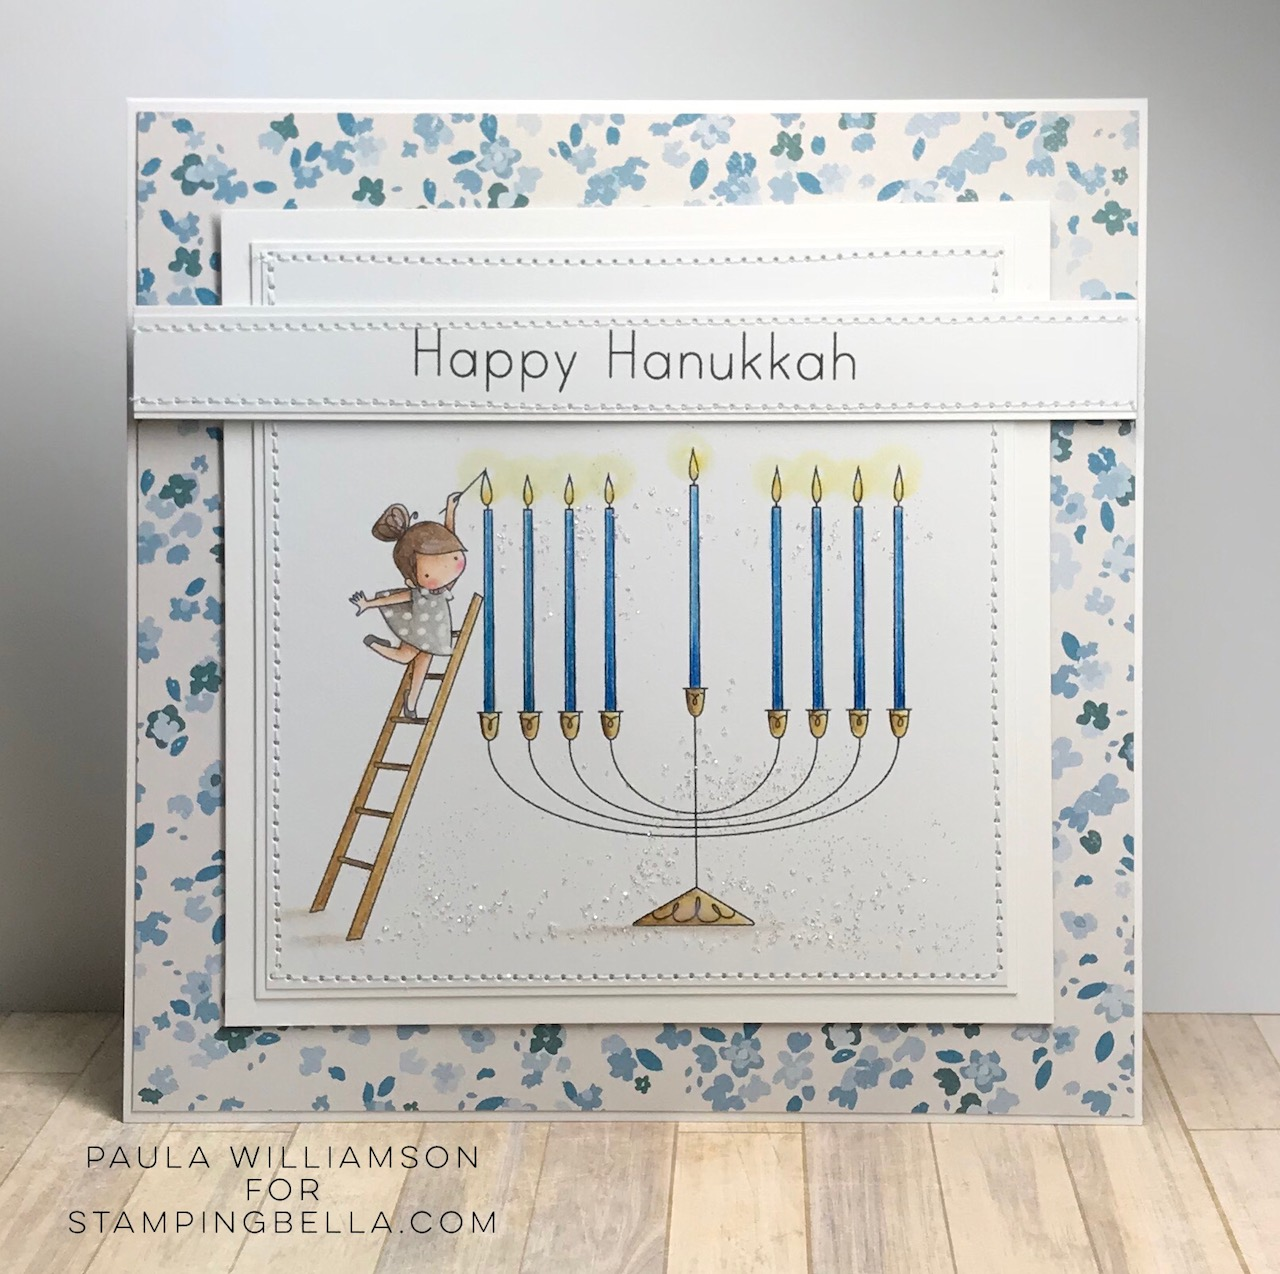 www.stampingbella.com: rubber stamp used TEENY TINY TOWNIE CHANUKAH card by PAULA WILLIAMSON